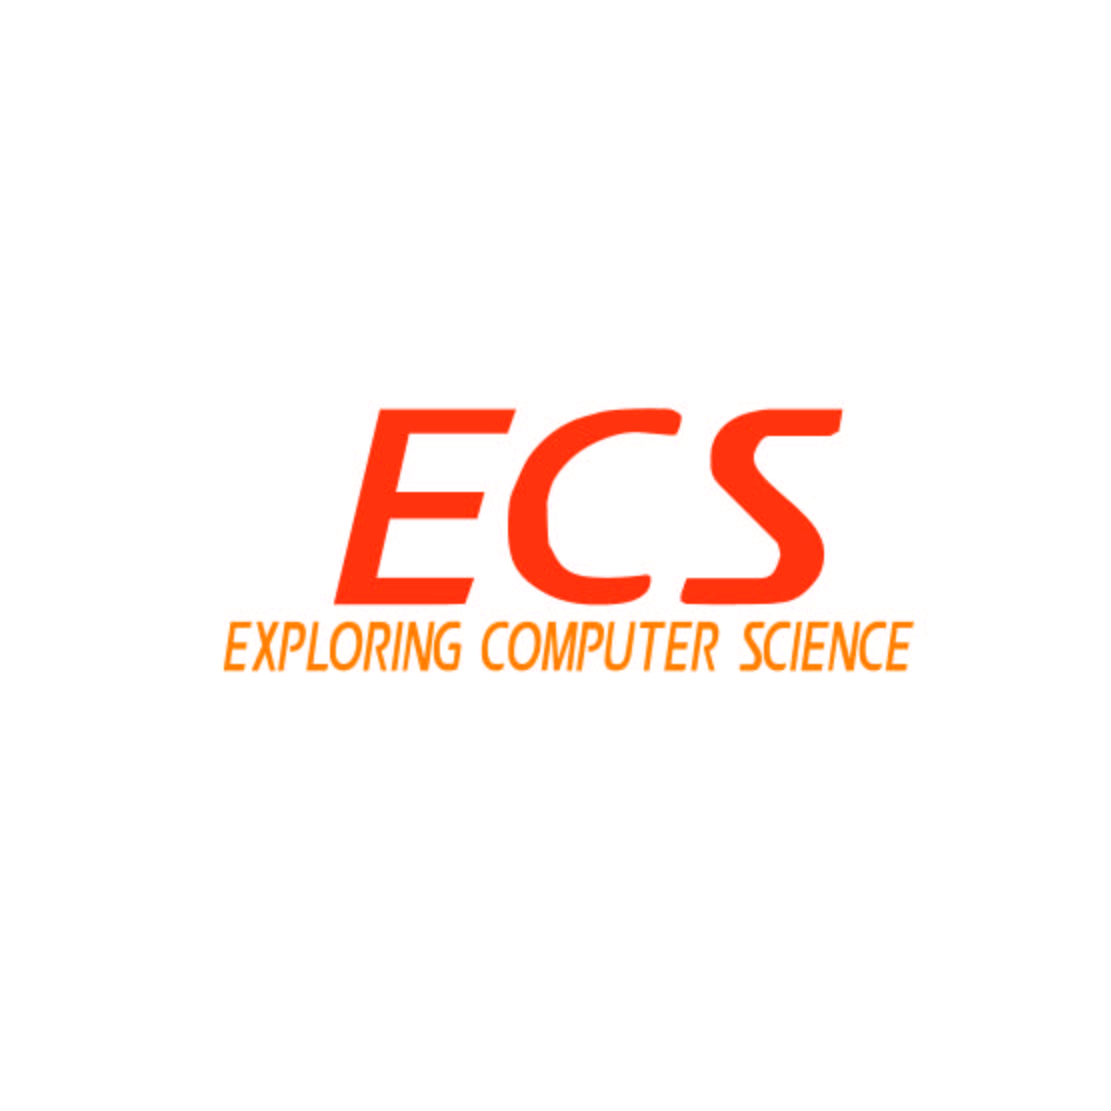 Logo Design by Saunter - Entry No. 85 in the Logo Design Contest ECS - Exploring Computer Science.